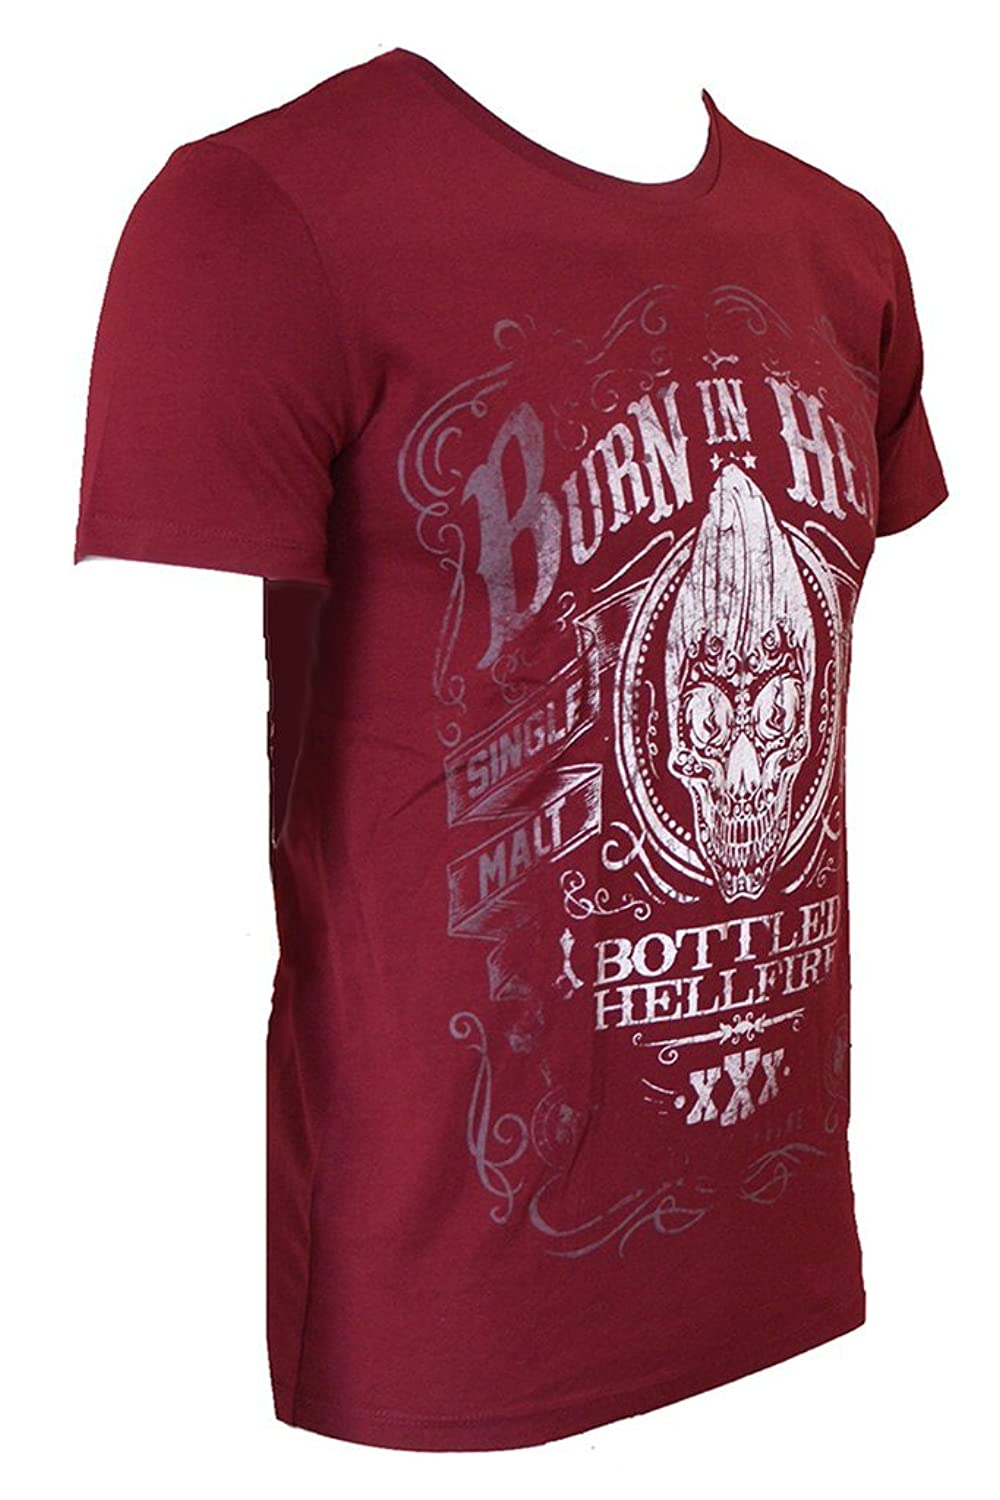 BURN IN HELL - Mens T-Shirt - Official Jacks Inn Merchandise